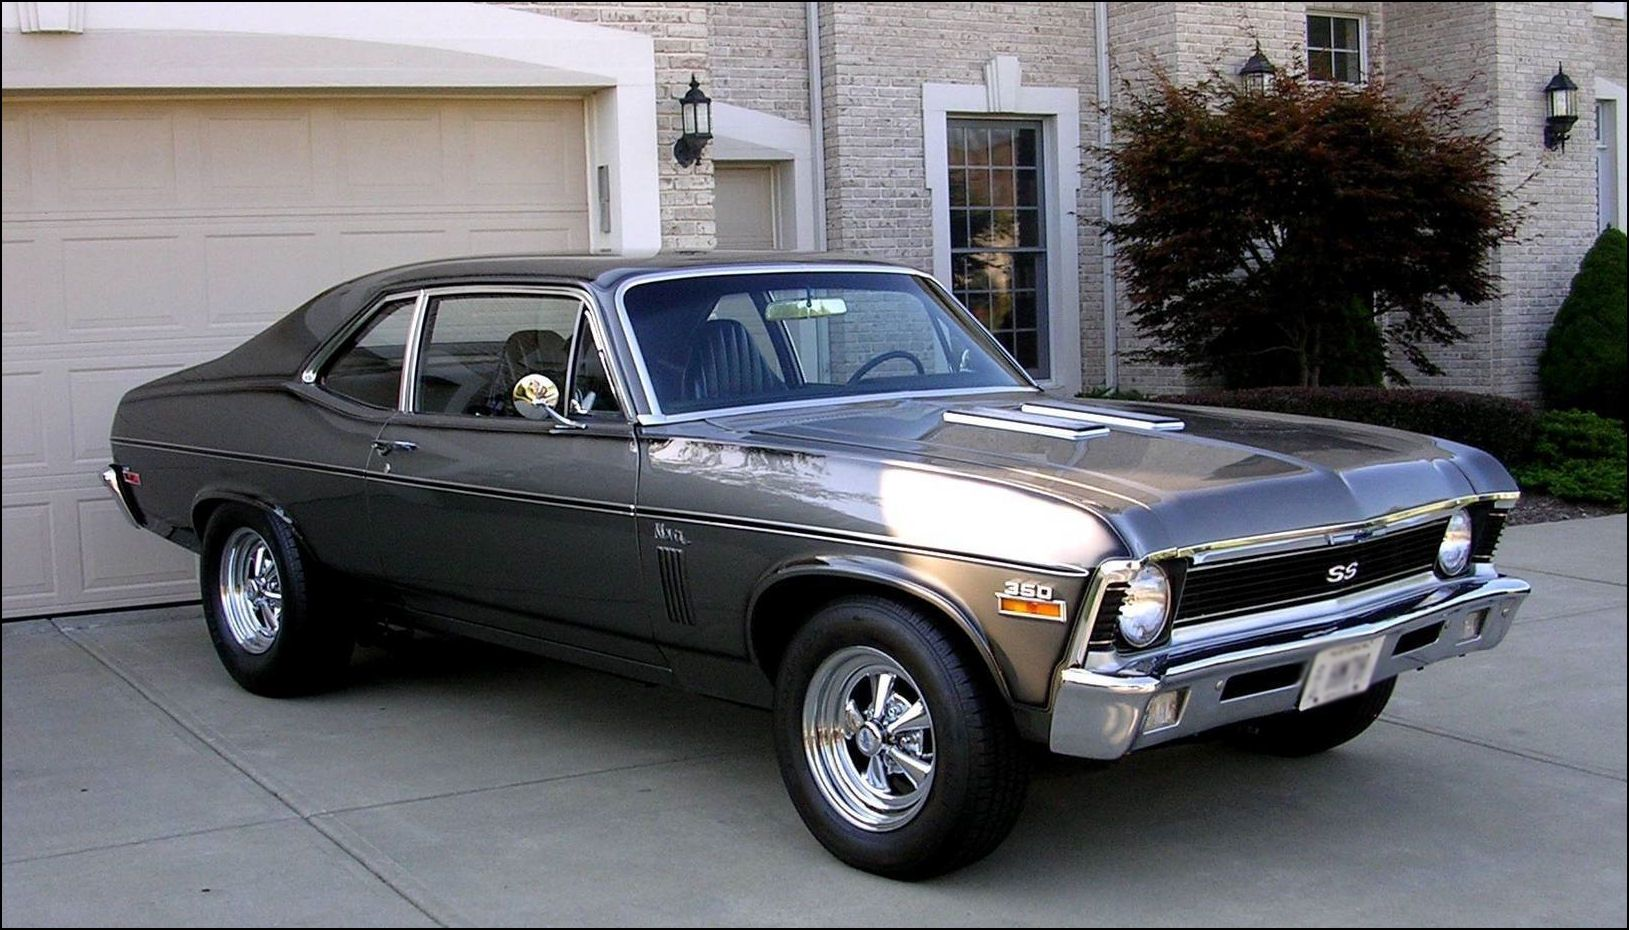 I Would Drive This One I Would Drive It Right Up To My Mother S House And Hand Her The Keys And The Title We Mi Chevy Nova Chevrolet Nova Chevy Muscle